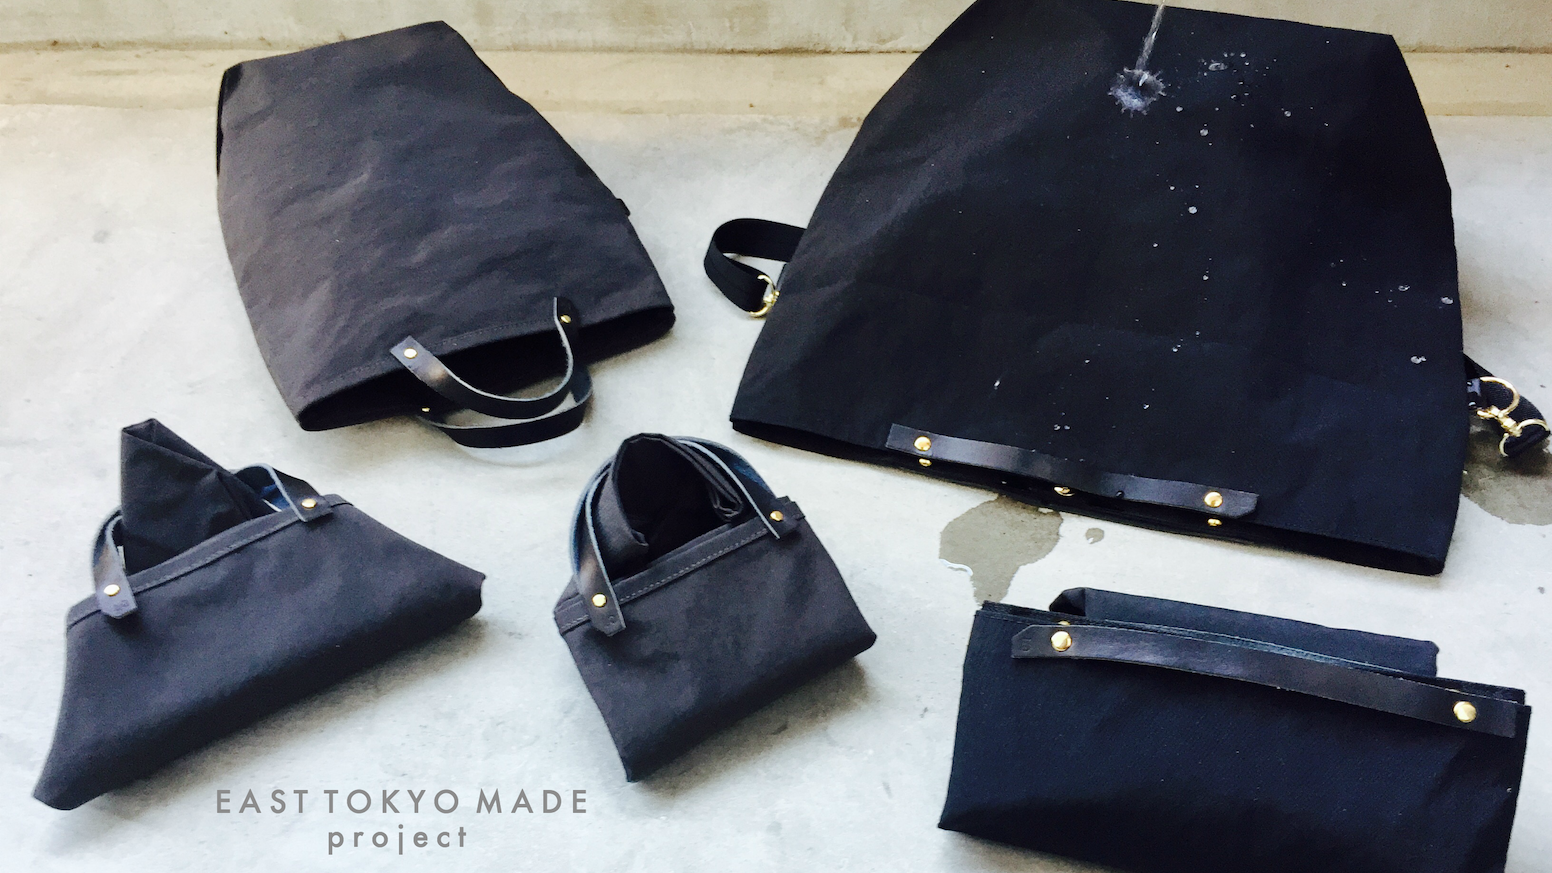 fem -A Japan-made Multifunctional bag for Minimalists is the top crowdfunding project launched today. fem -A Japan-made Multifunctional bag for Minimalists raised over $1286460 from 142 backers. Other top projects include Hex Chest Mini Dice Boxes and Pebble Dice, ChAoS Theory MMO, ?Pastel Pins?...